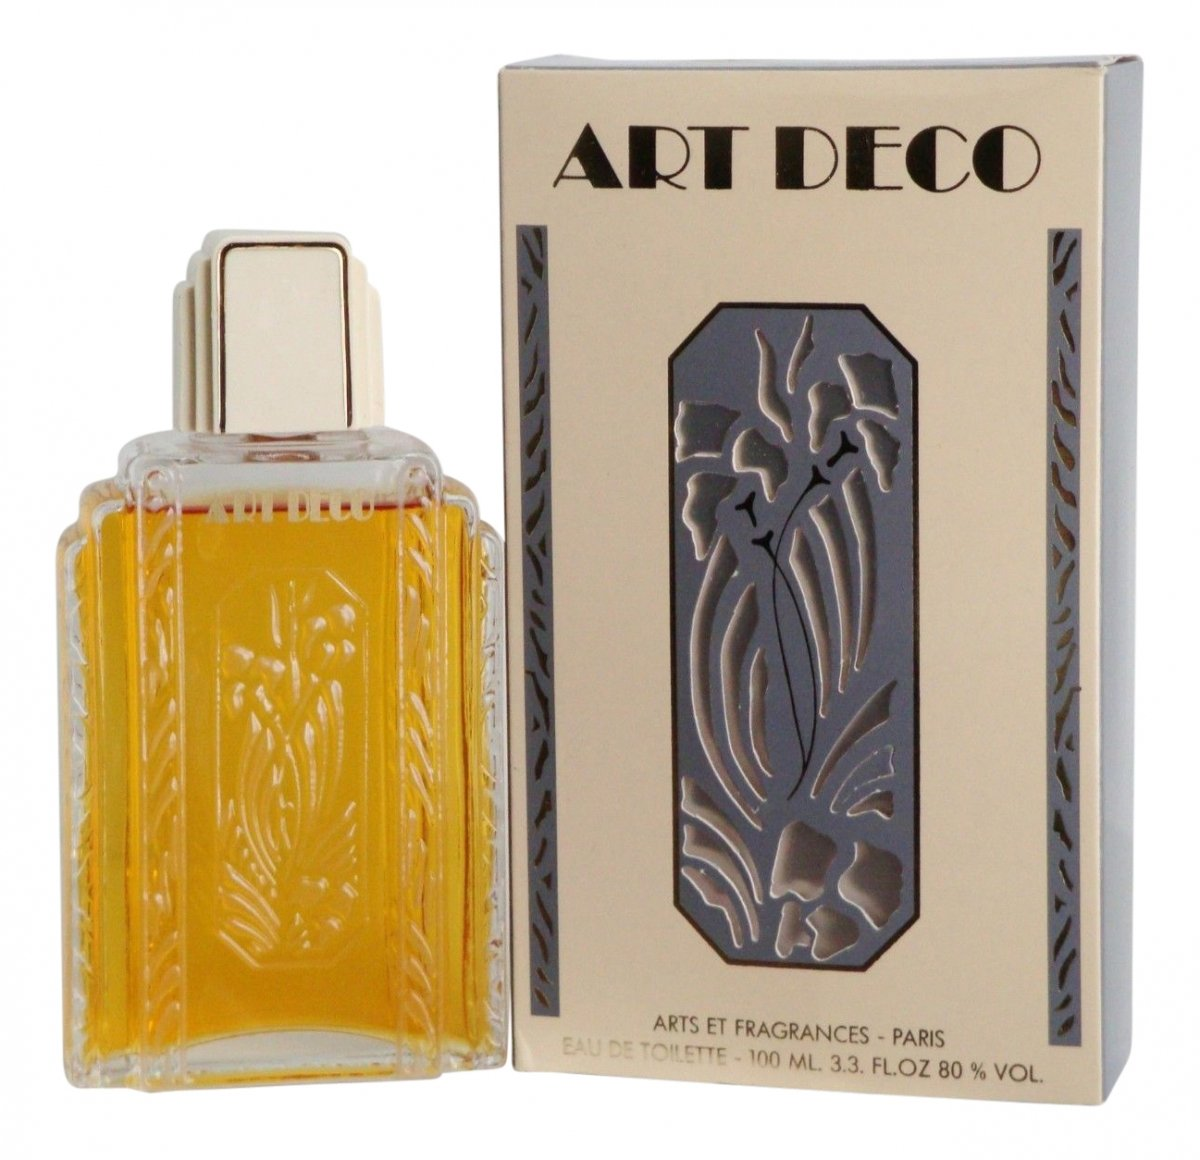 Arts et fragrances art deco reviews and rating for Art et decoration